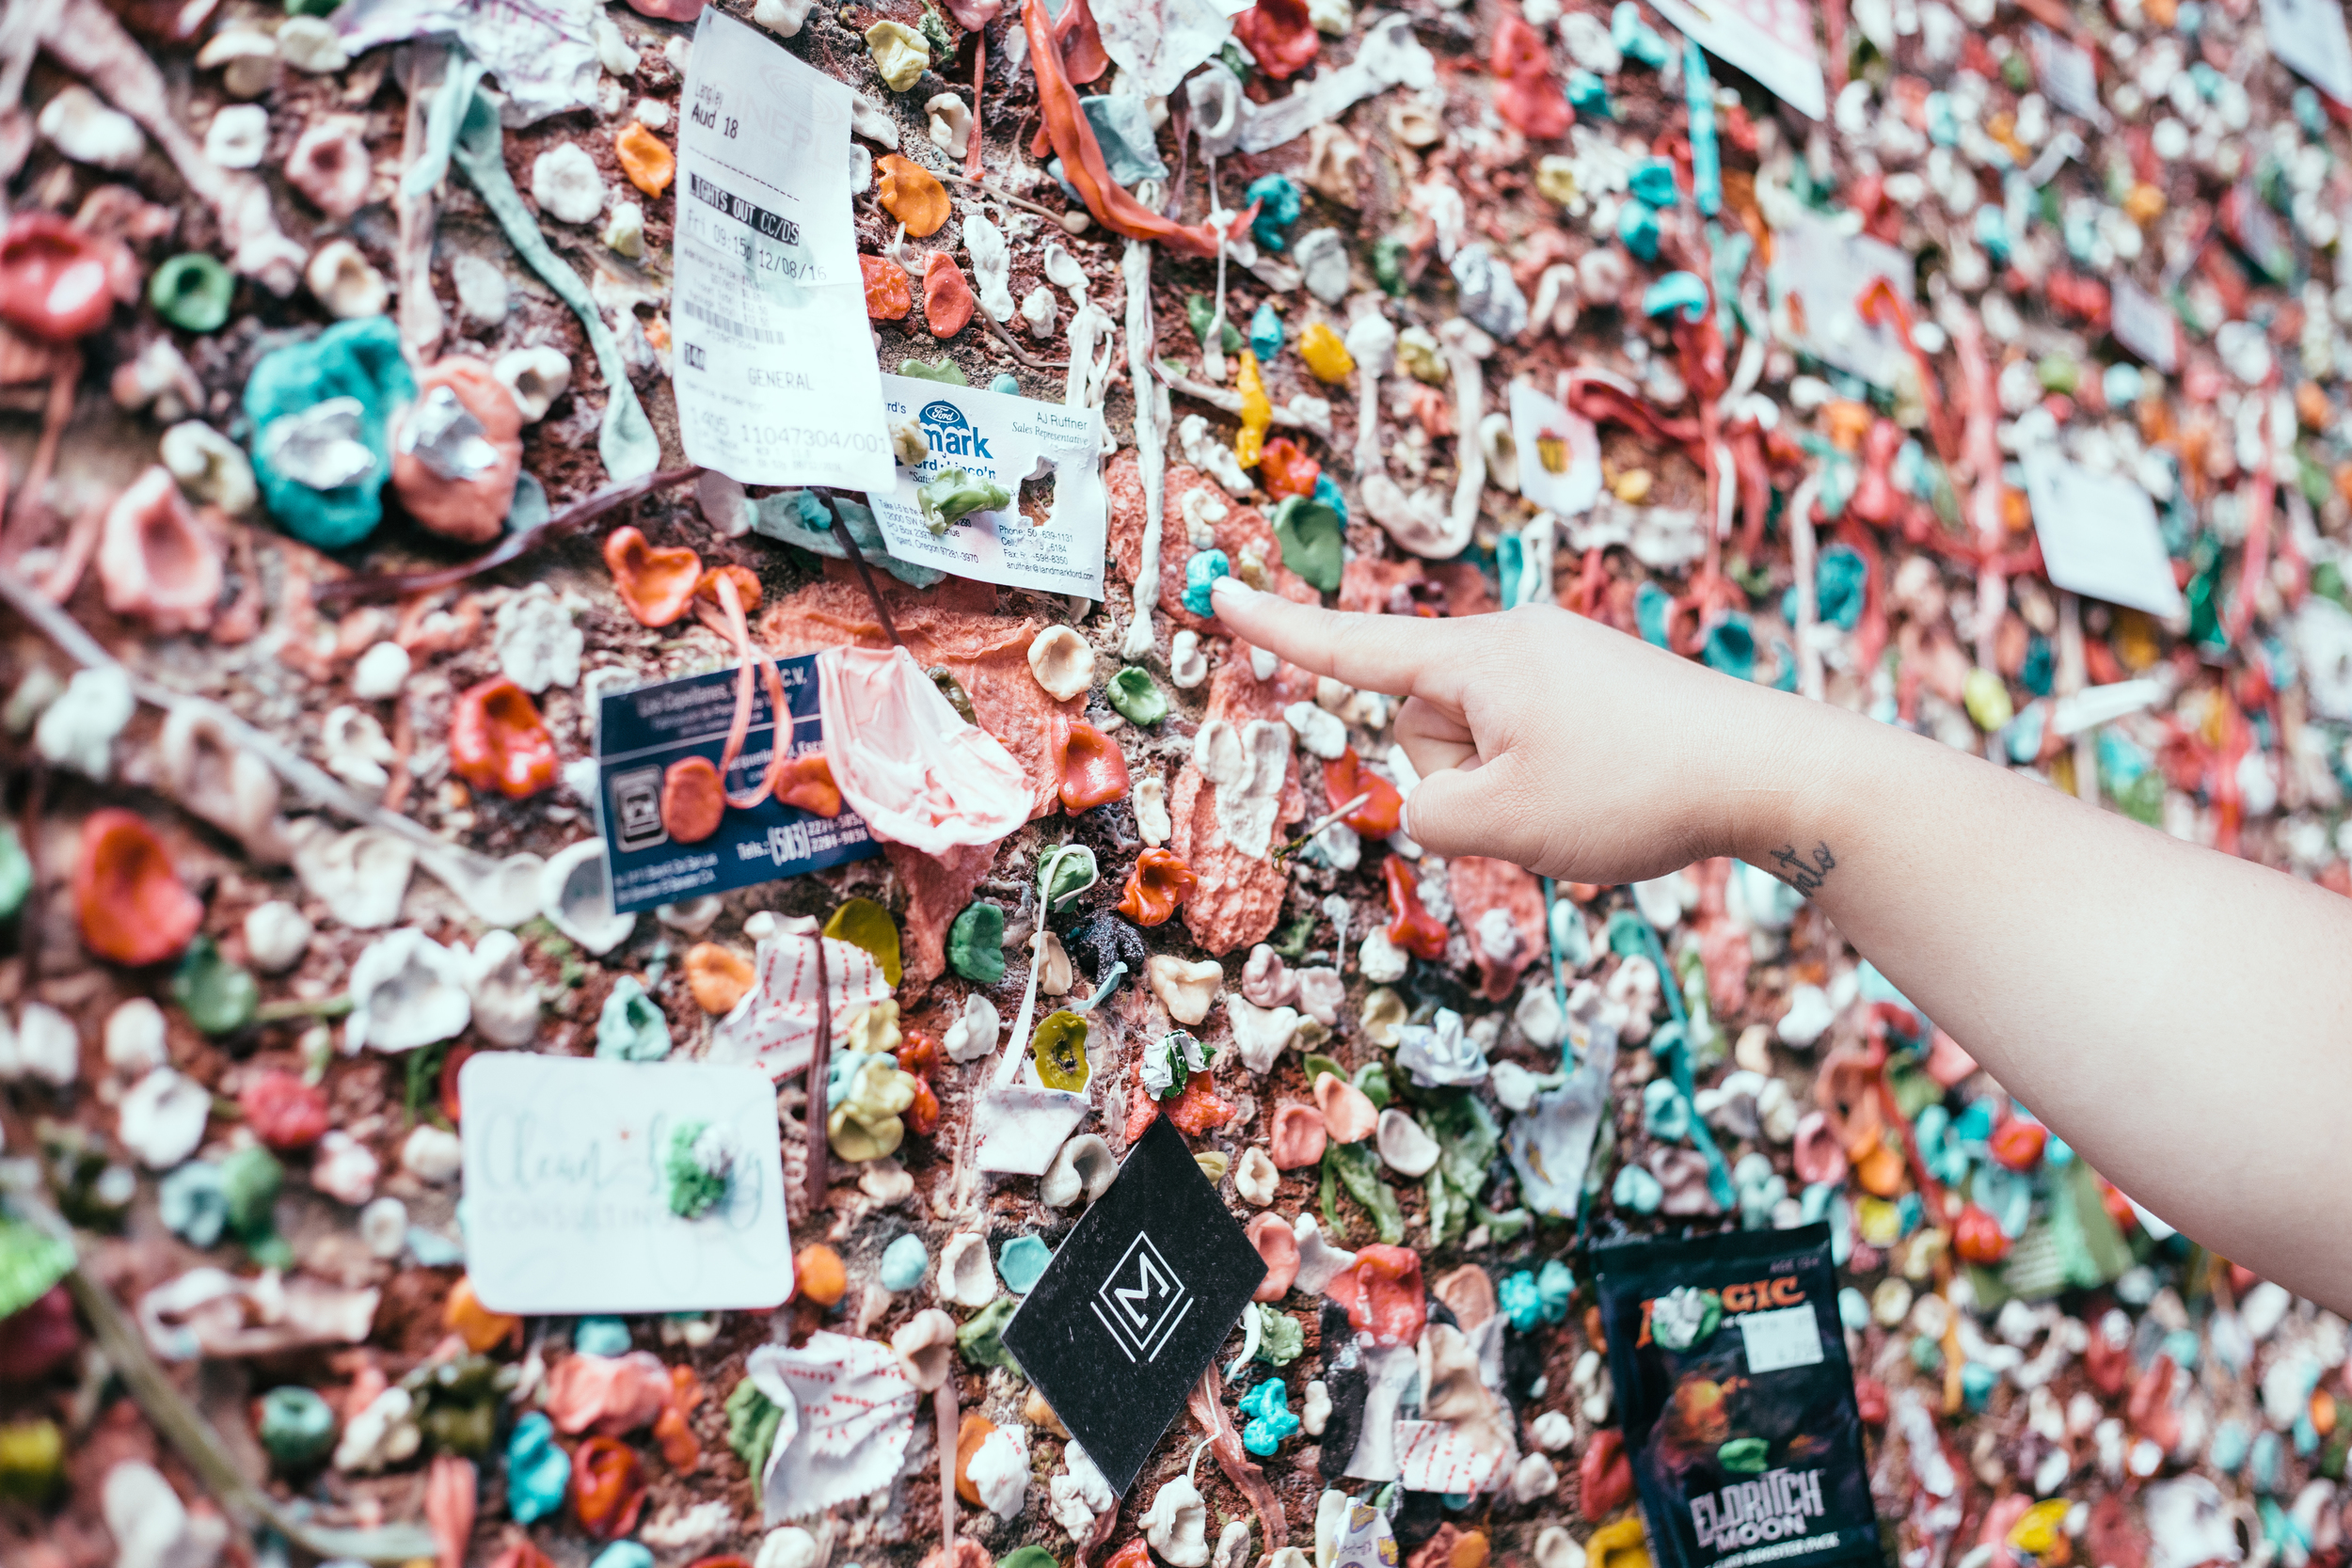 Classic Gum Wall action because who visits Seattle and skips this infamous alleyway?